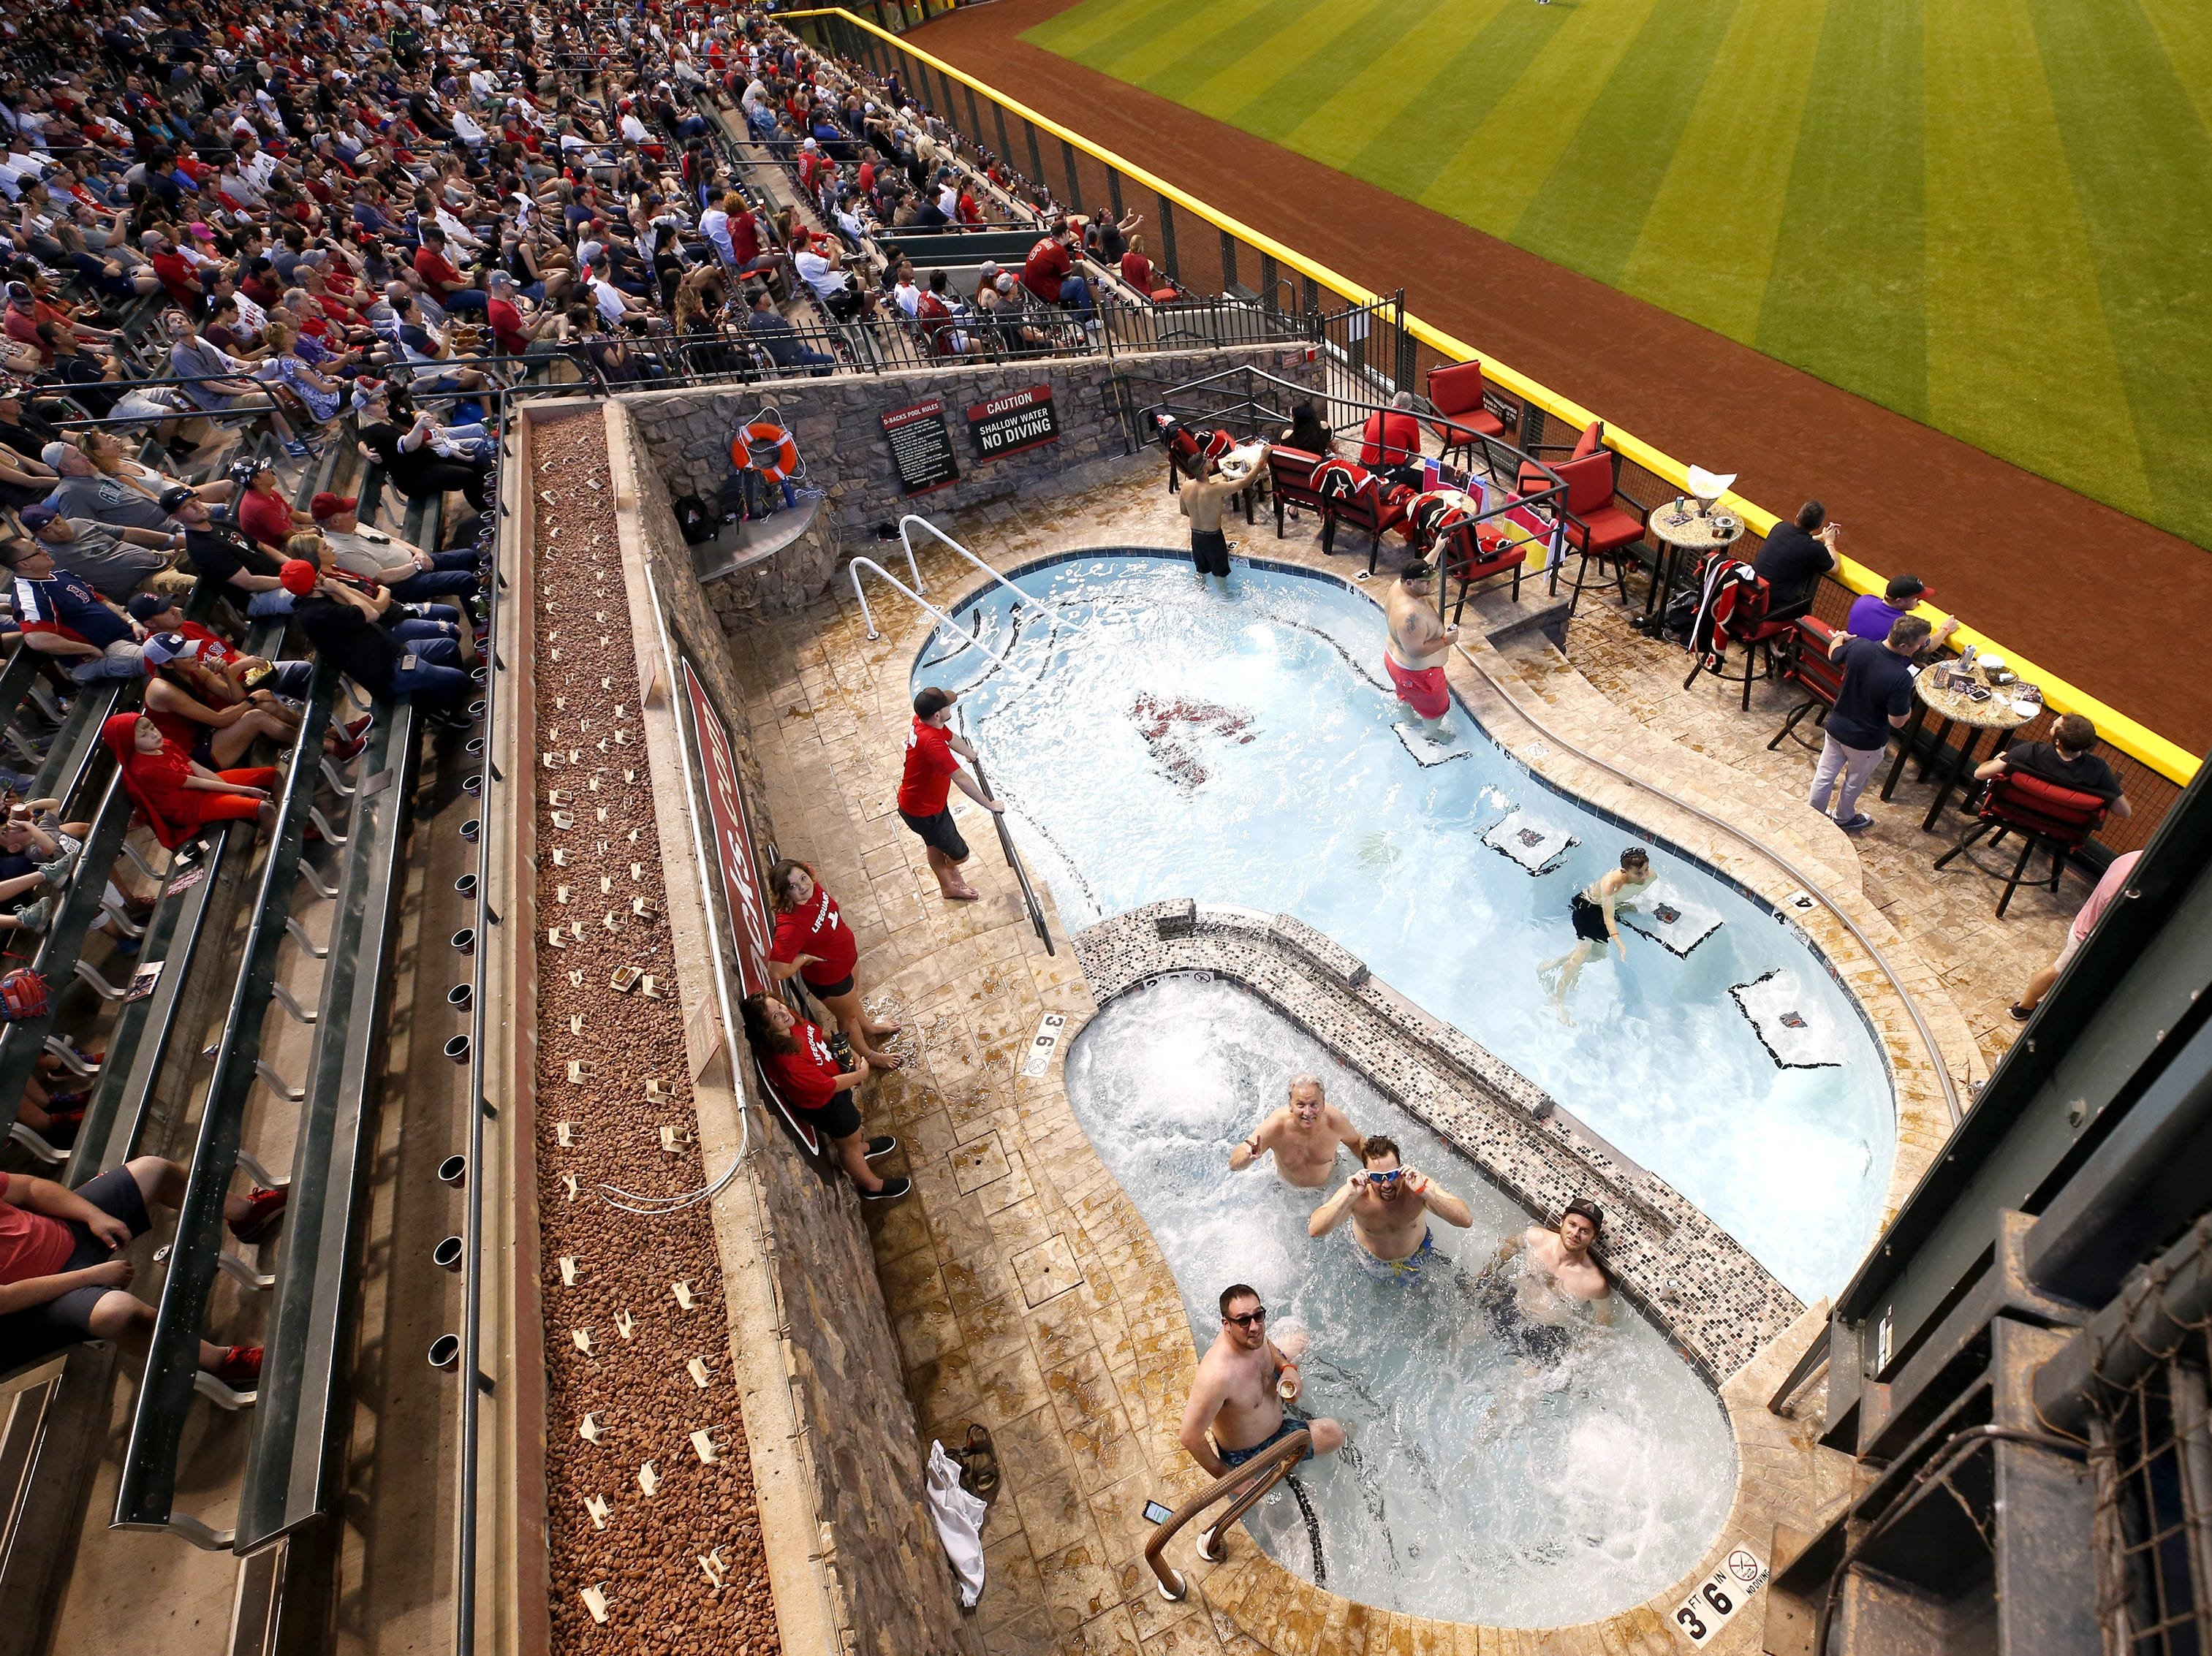 Baseball fans enjoy the pool during Opening Day at Chase Field in Phoenix on April 5.